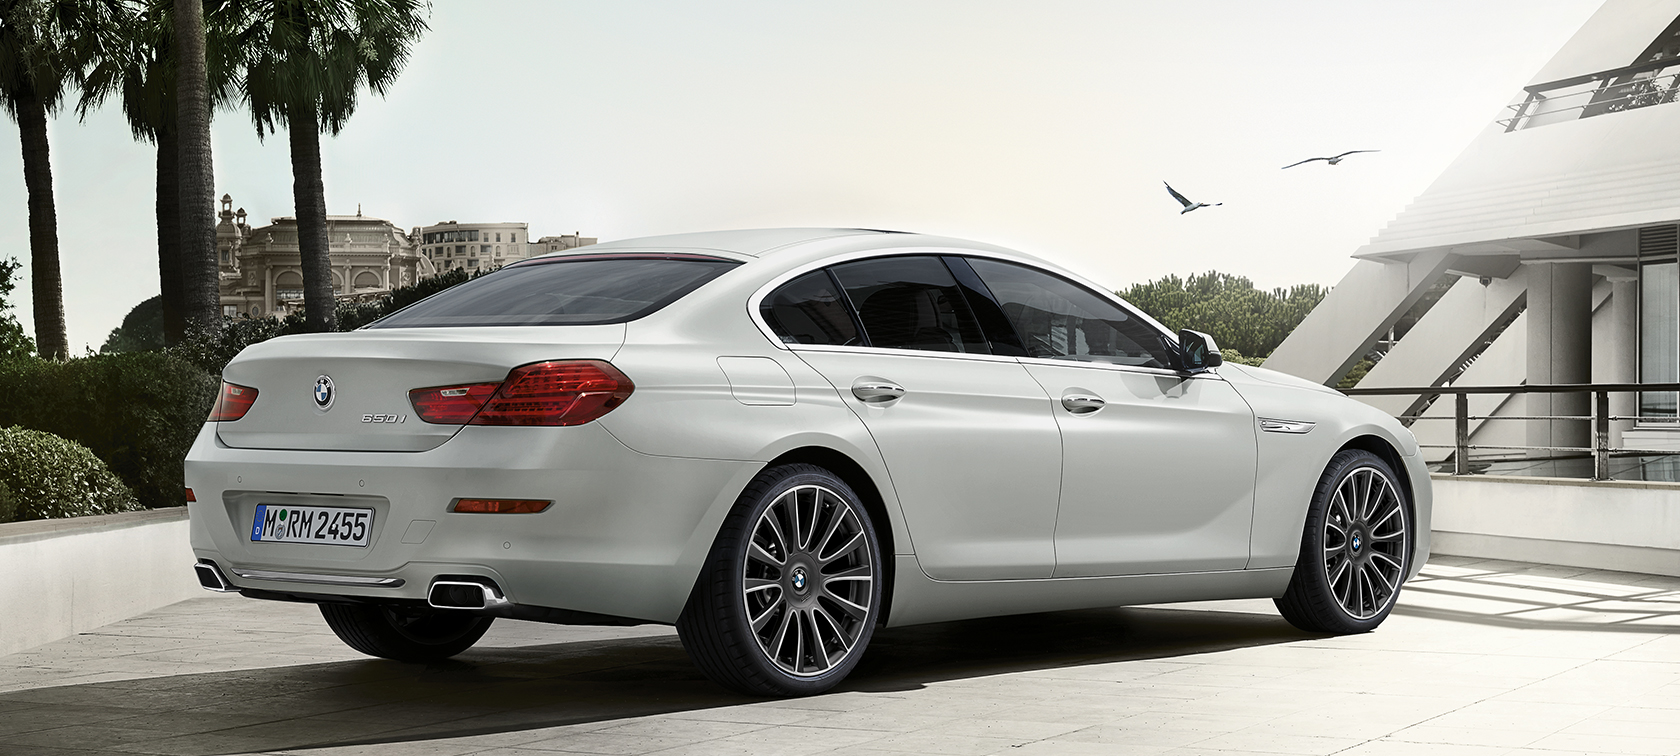 Equipment for the BMW 6 Series Gran Coupé